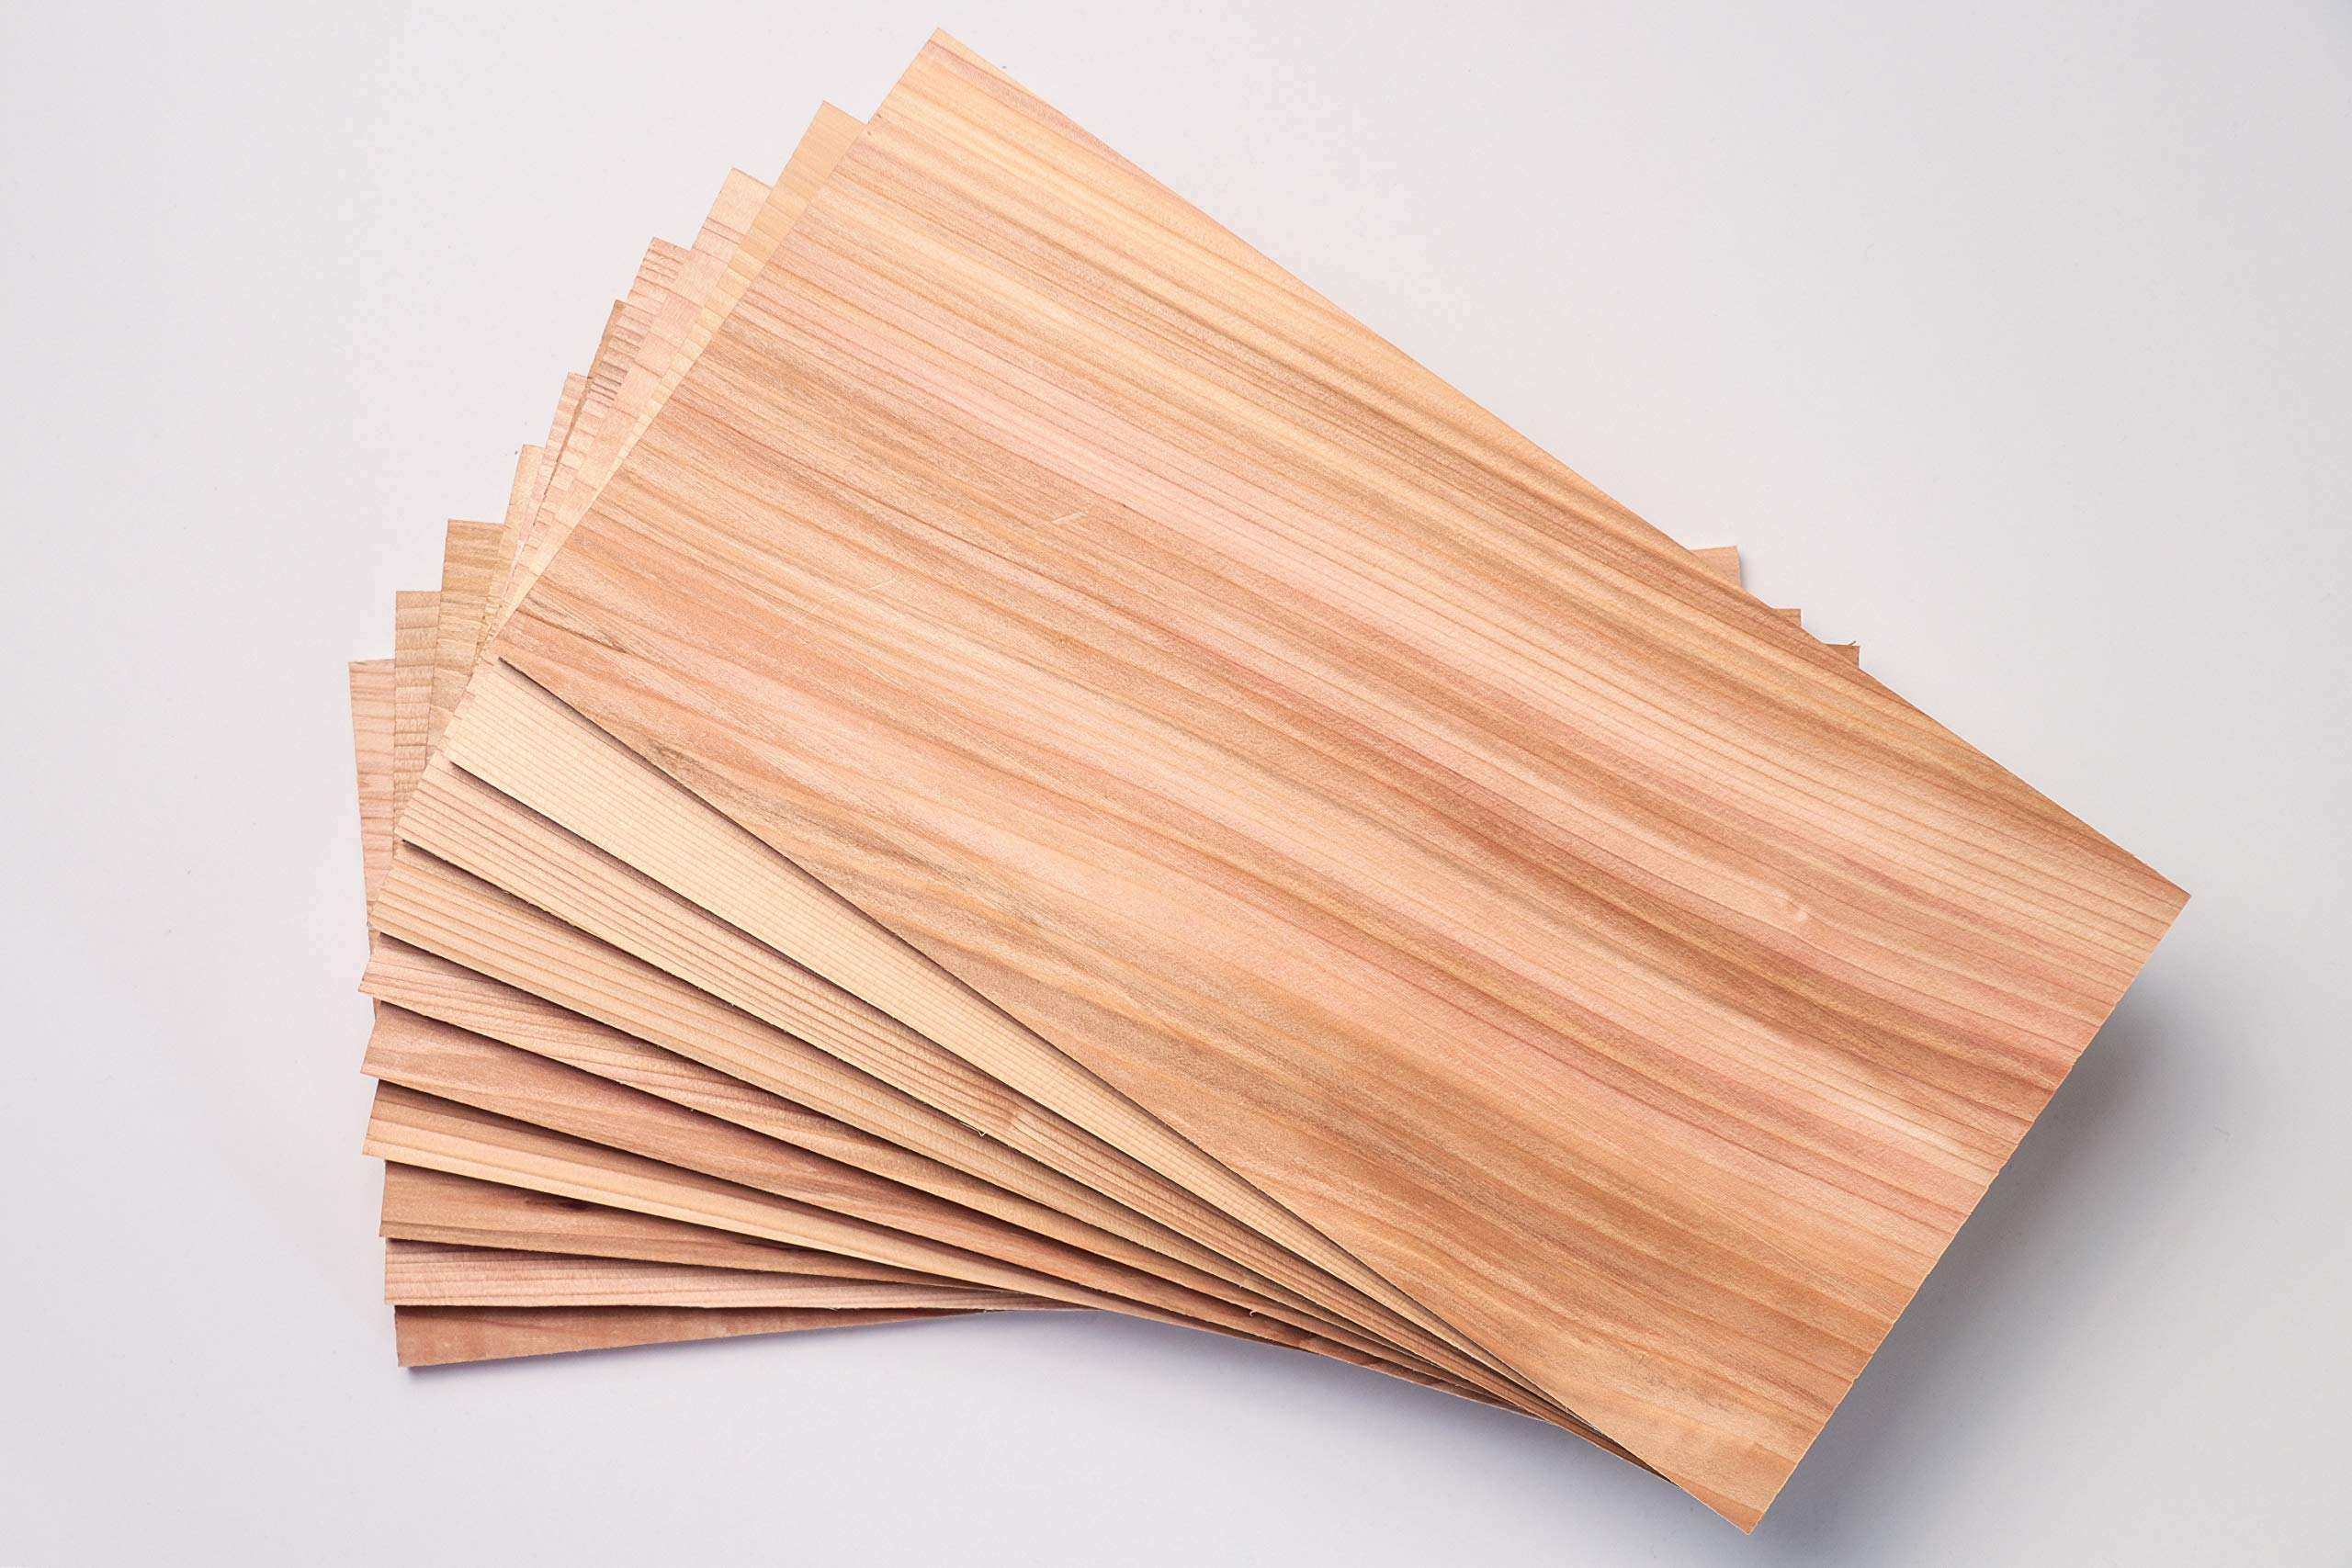 Premium Cedar Grilling Planks - 10 Pack 7'' x 14'' x 3/8 Thick. This is A True Western Red Cedar Grilling Plank Grown in The Pacific Northwest USA